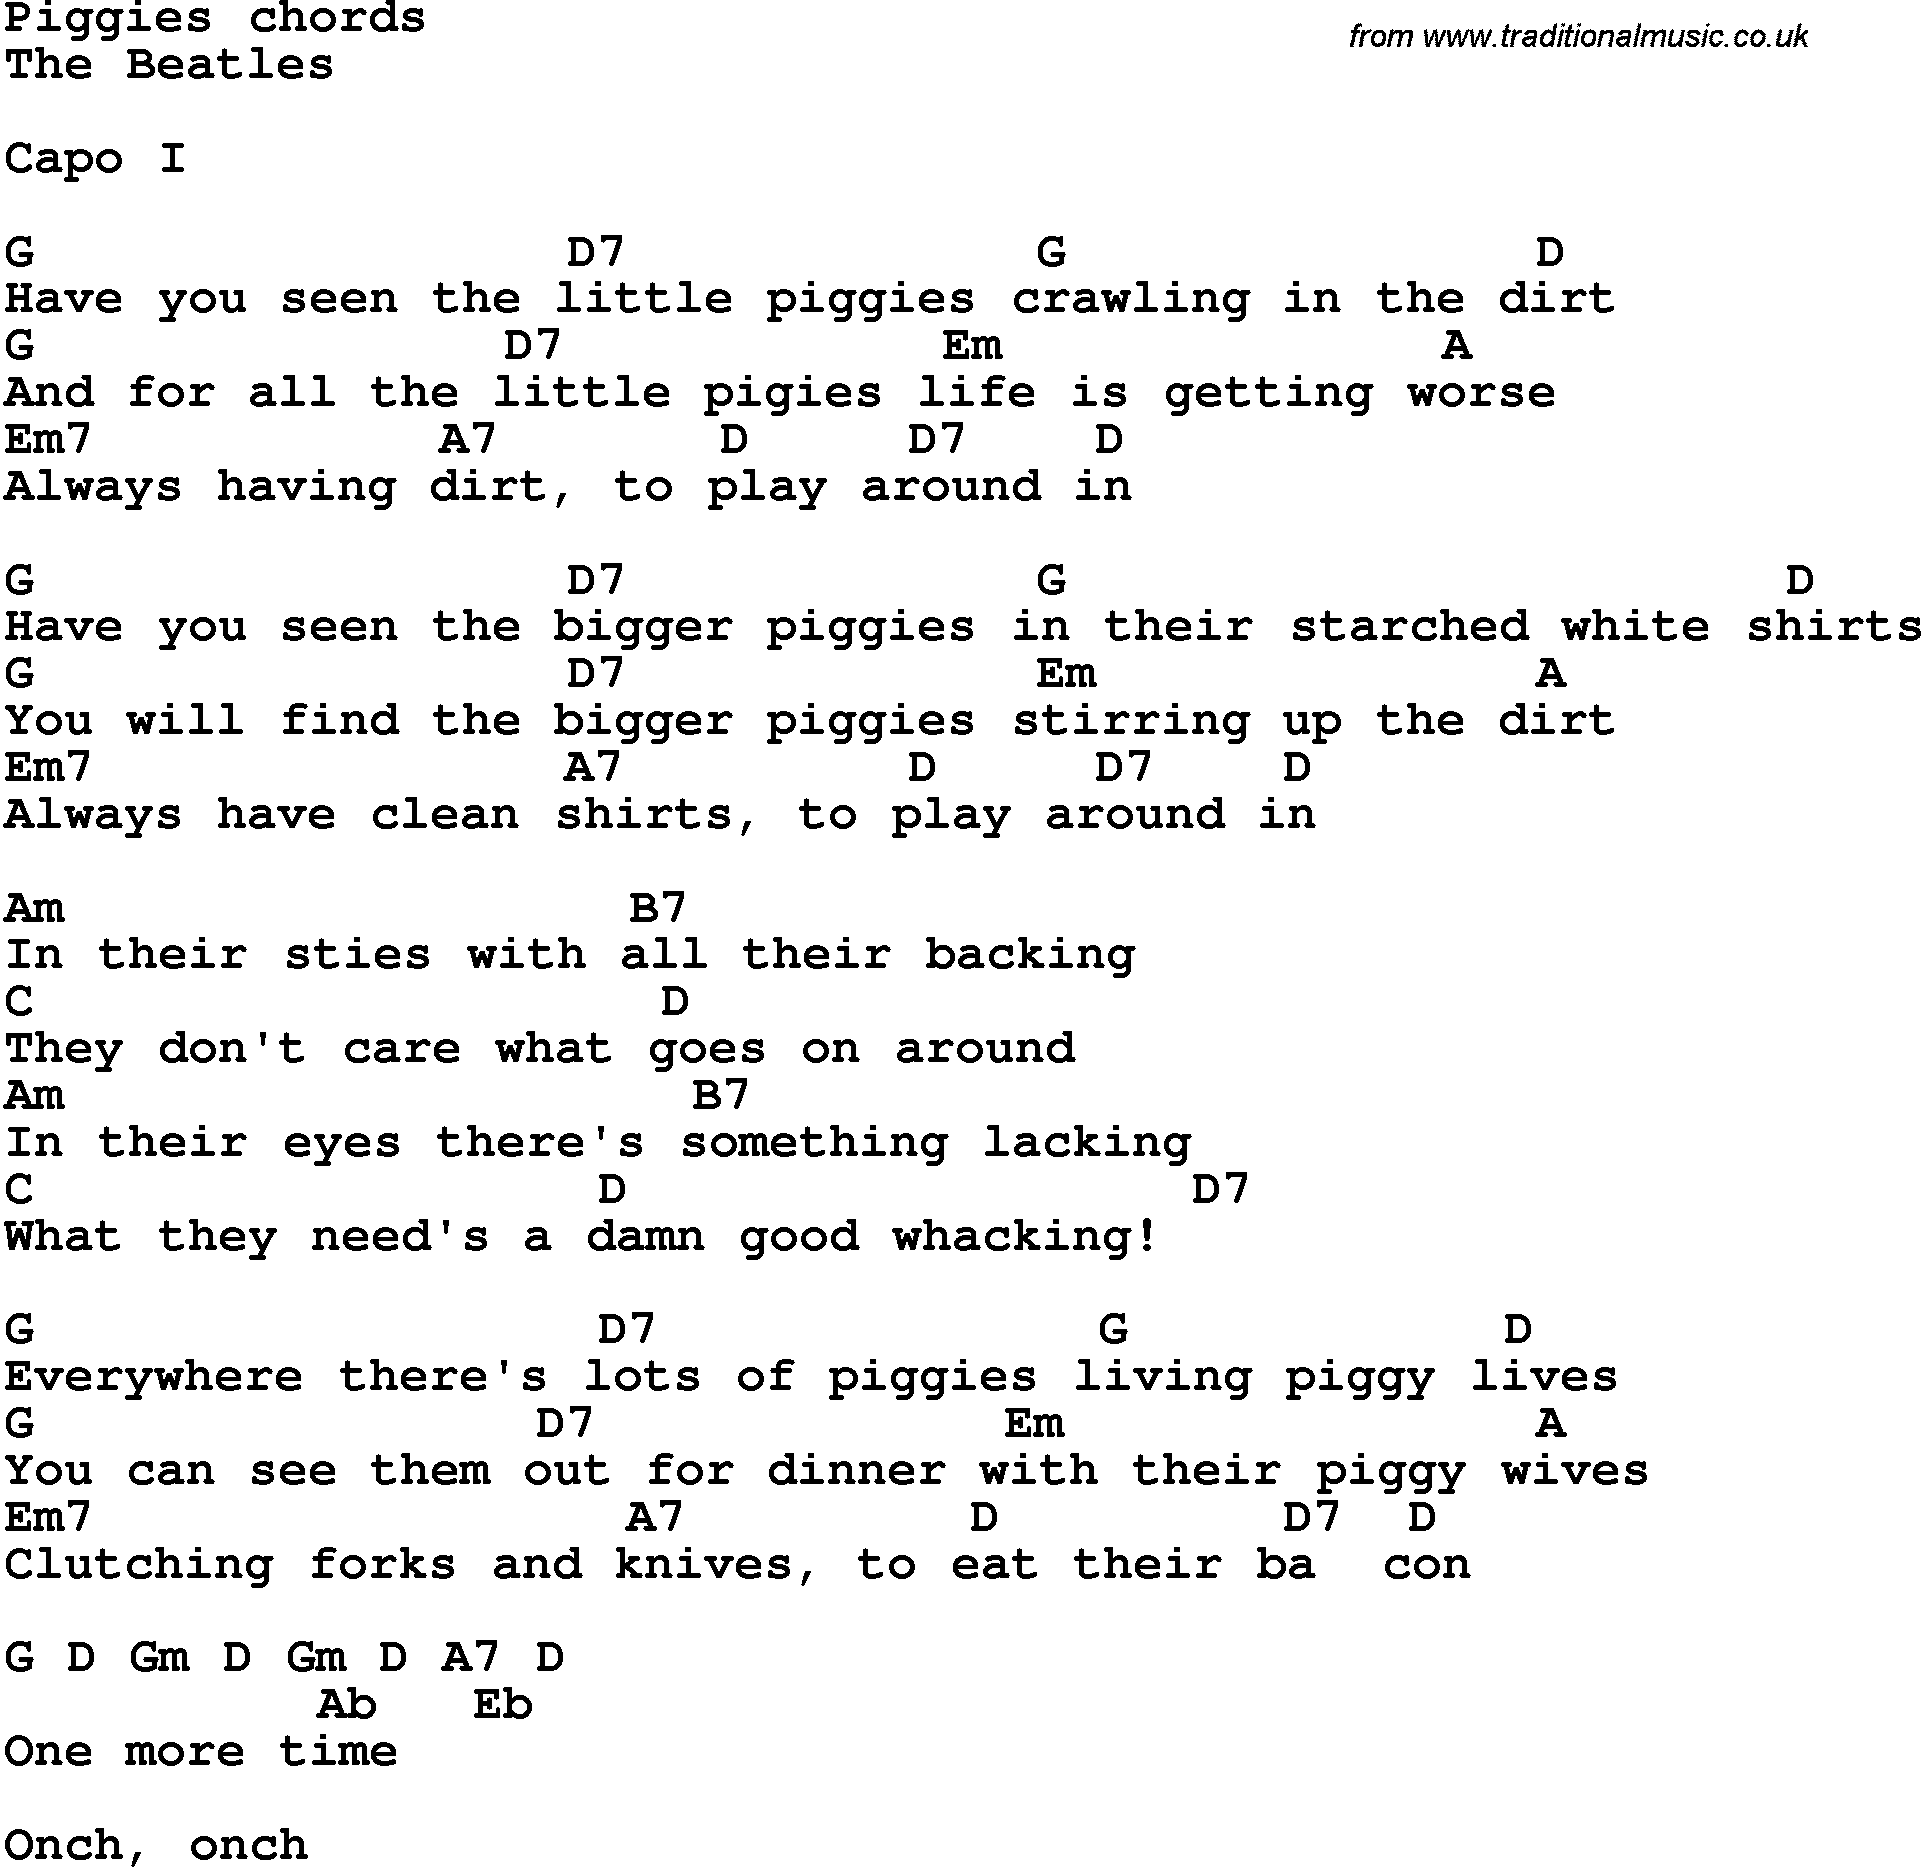 Song lyrics with guitar chords for piggies the beatles songs song lyrics with guitar chords for piggies the beatles hexwebz Images